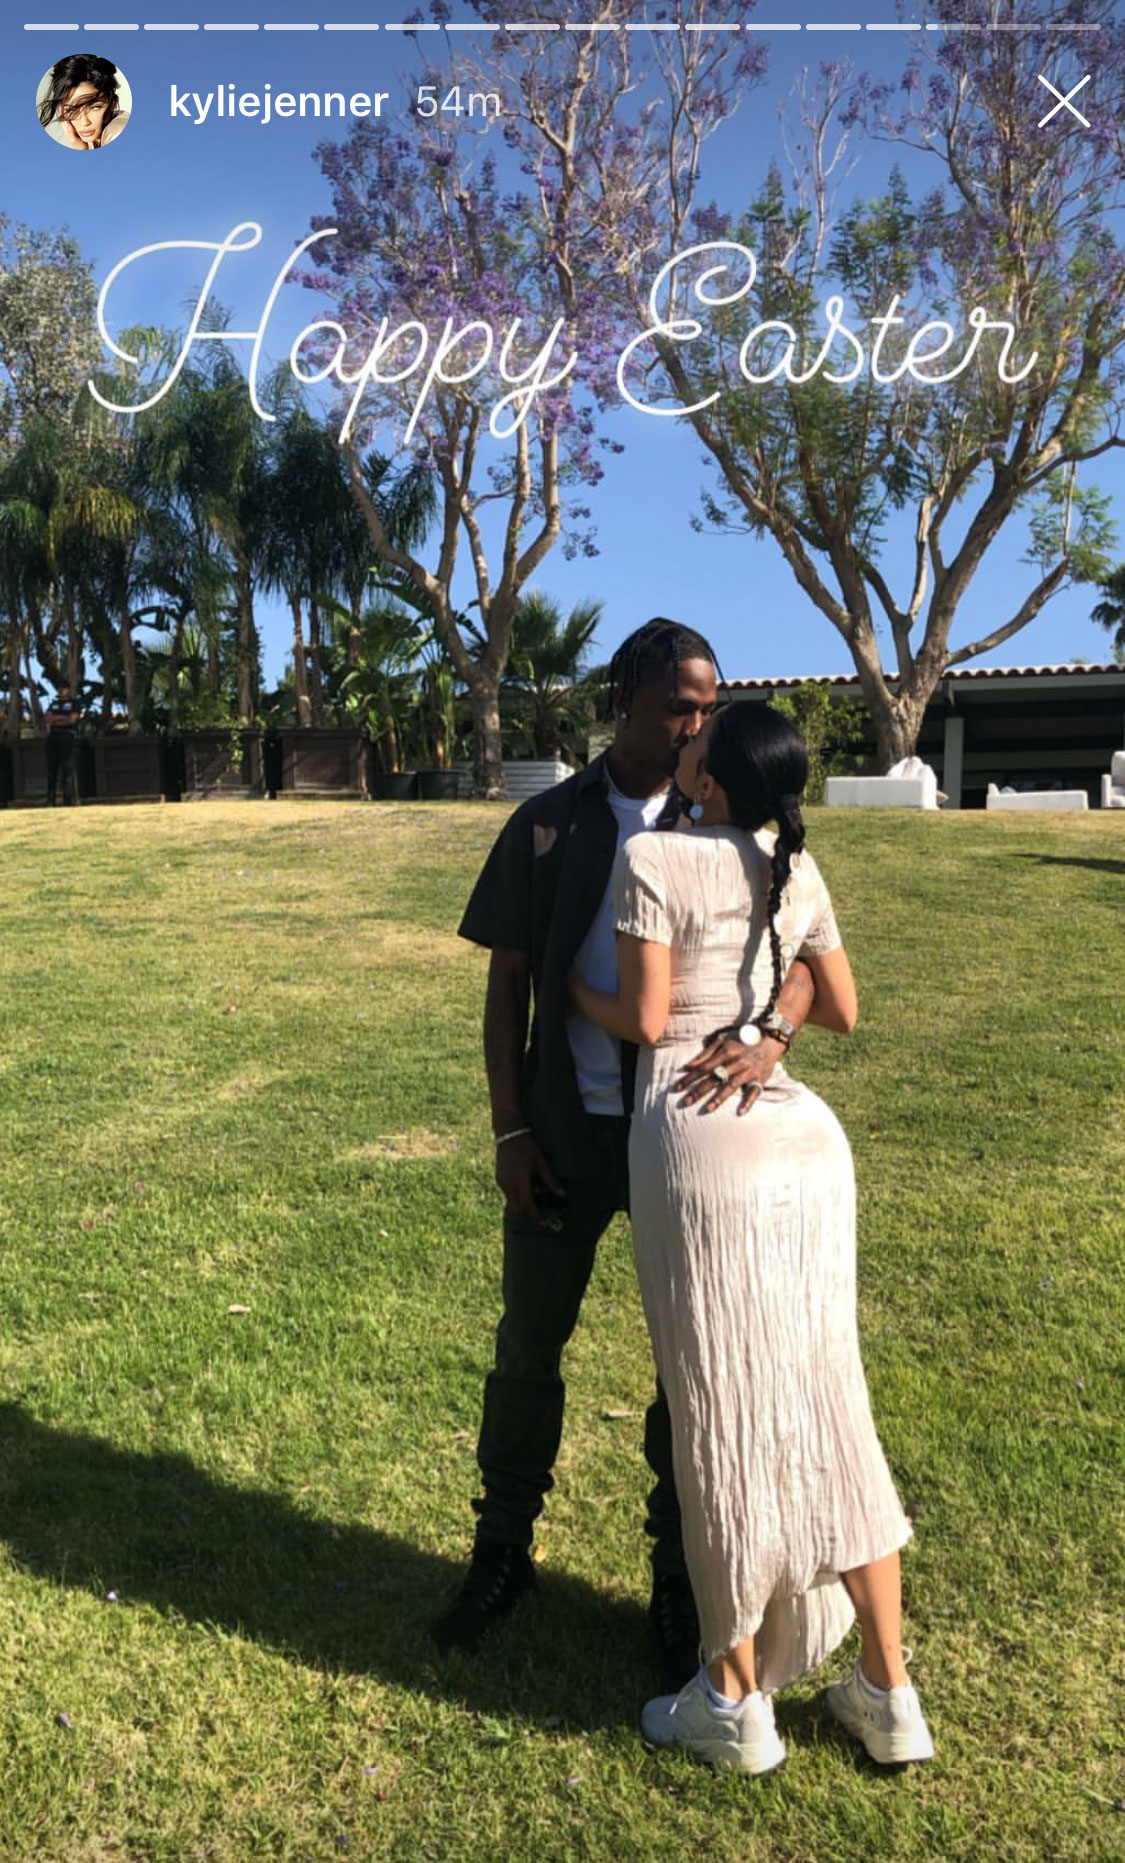 Kylie Jenner Kardashian Easter - Kylie Jenner and Travis Scott